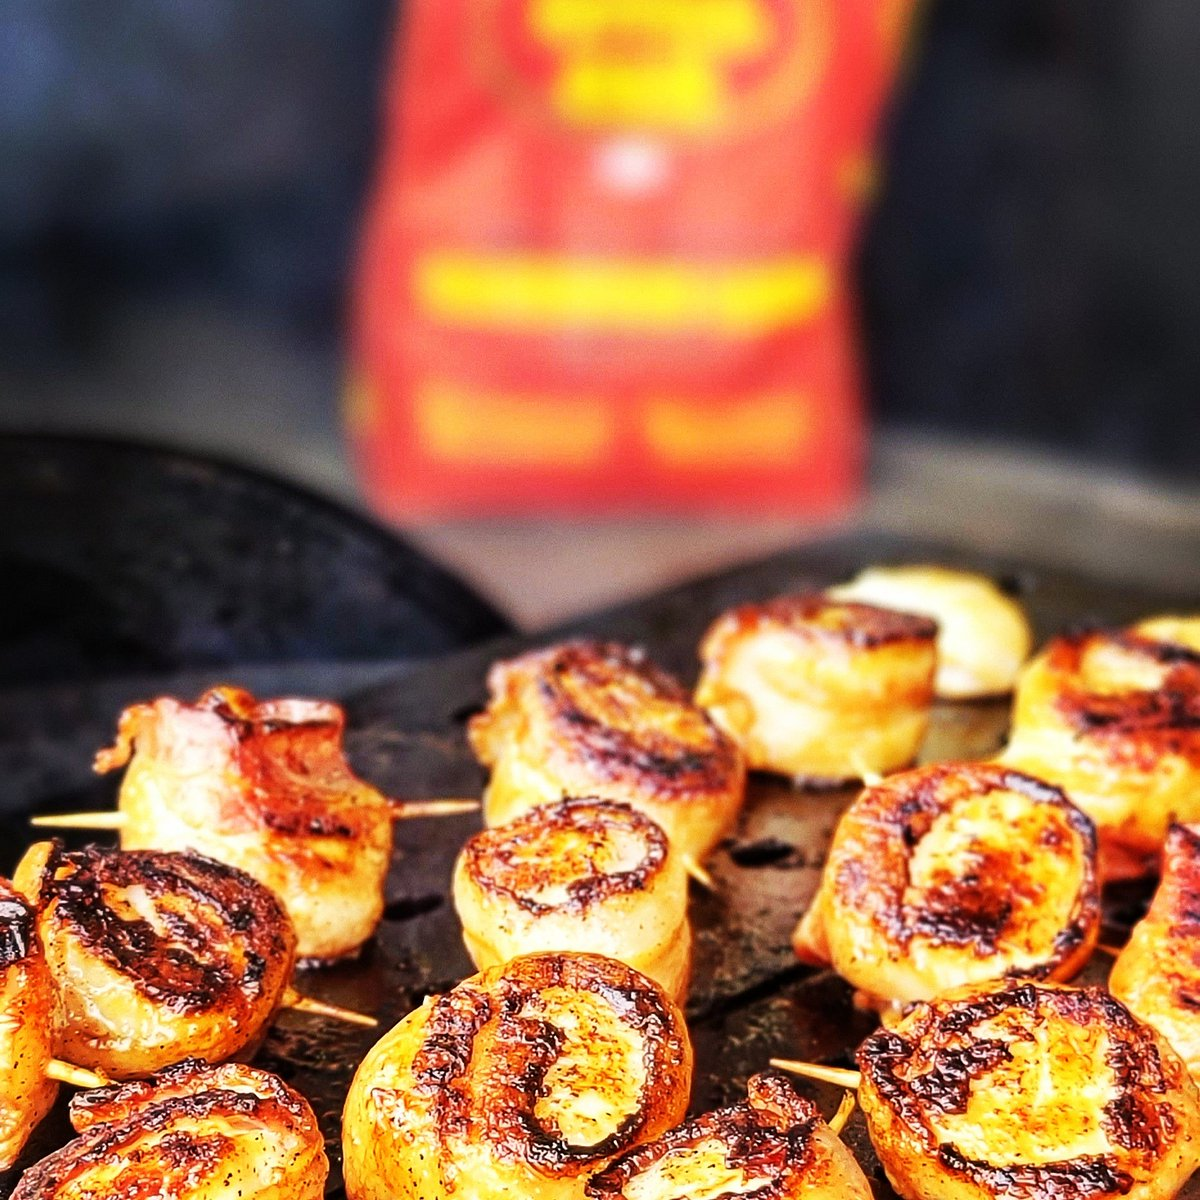 """The Bacon Wrapped Sea Scallops going into """"overtime"""" for a quick sear over some @ROCharcoal.   #RubSumLUV #bbqlife #bbqfamily #bbqnation #kcgrillingco #royaloakcharcoal #grillgrates #bacon #chiefskingdom #seafood #chiefsinot https://t.co/2jgmcXg9zk"""